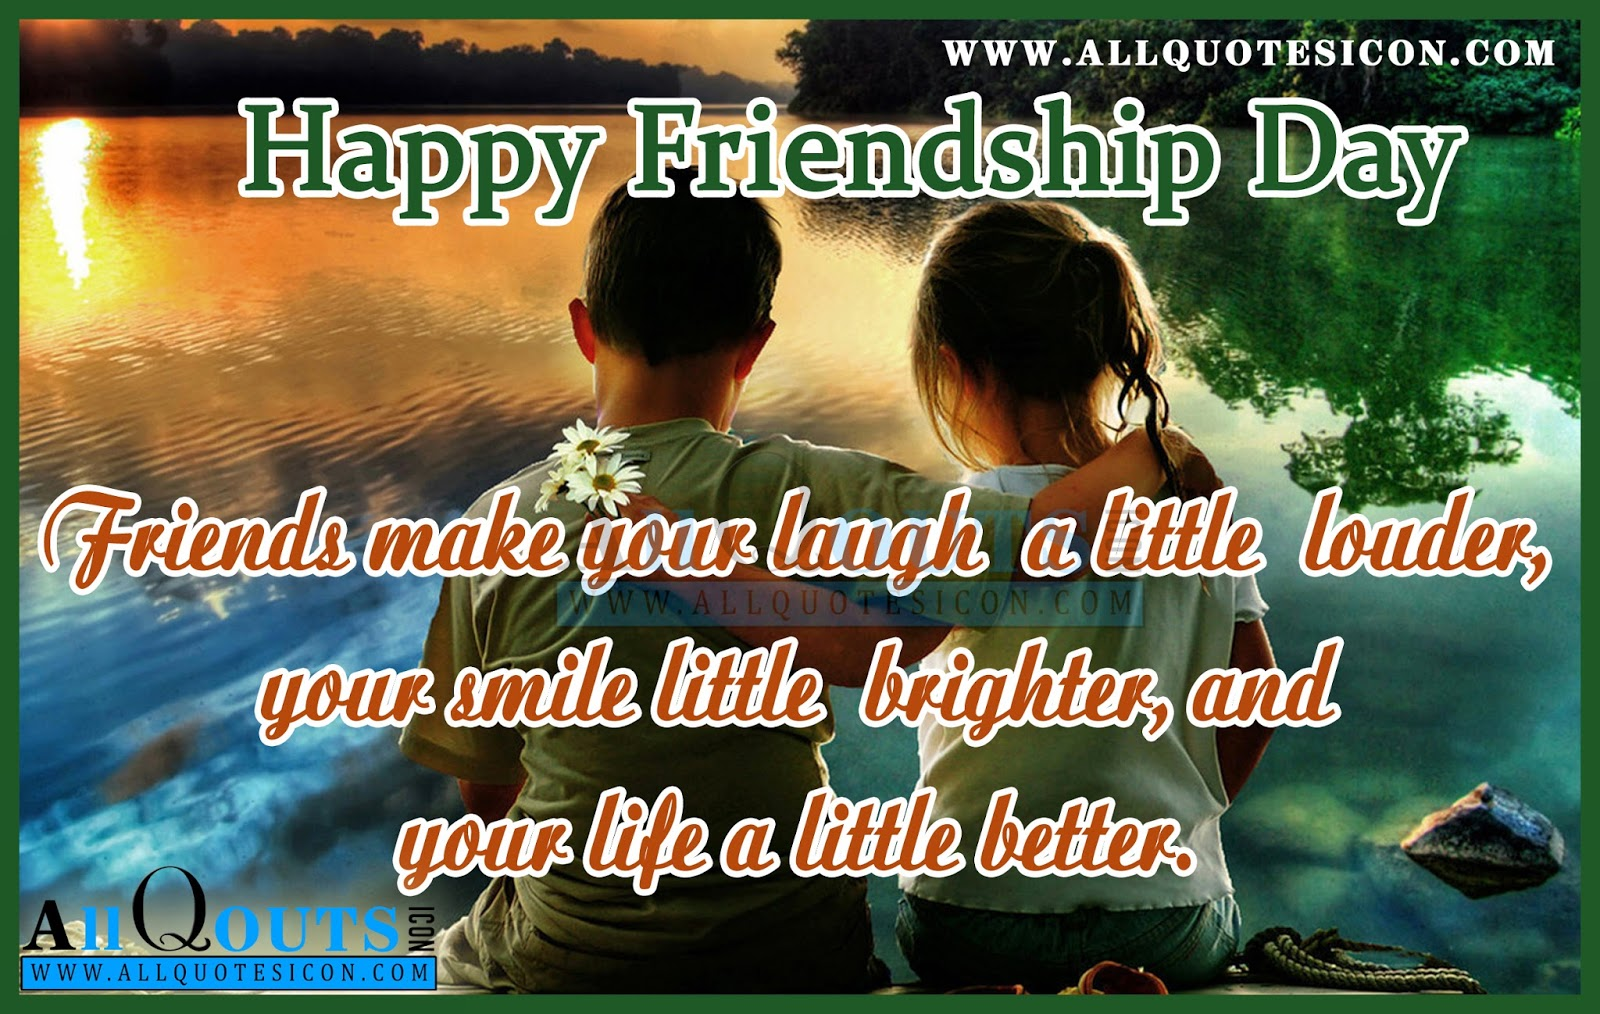 Happy Friendship Day Quotes And Images Hd Wallpapers Best